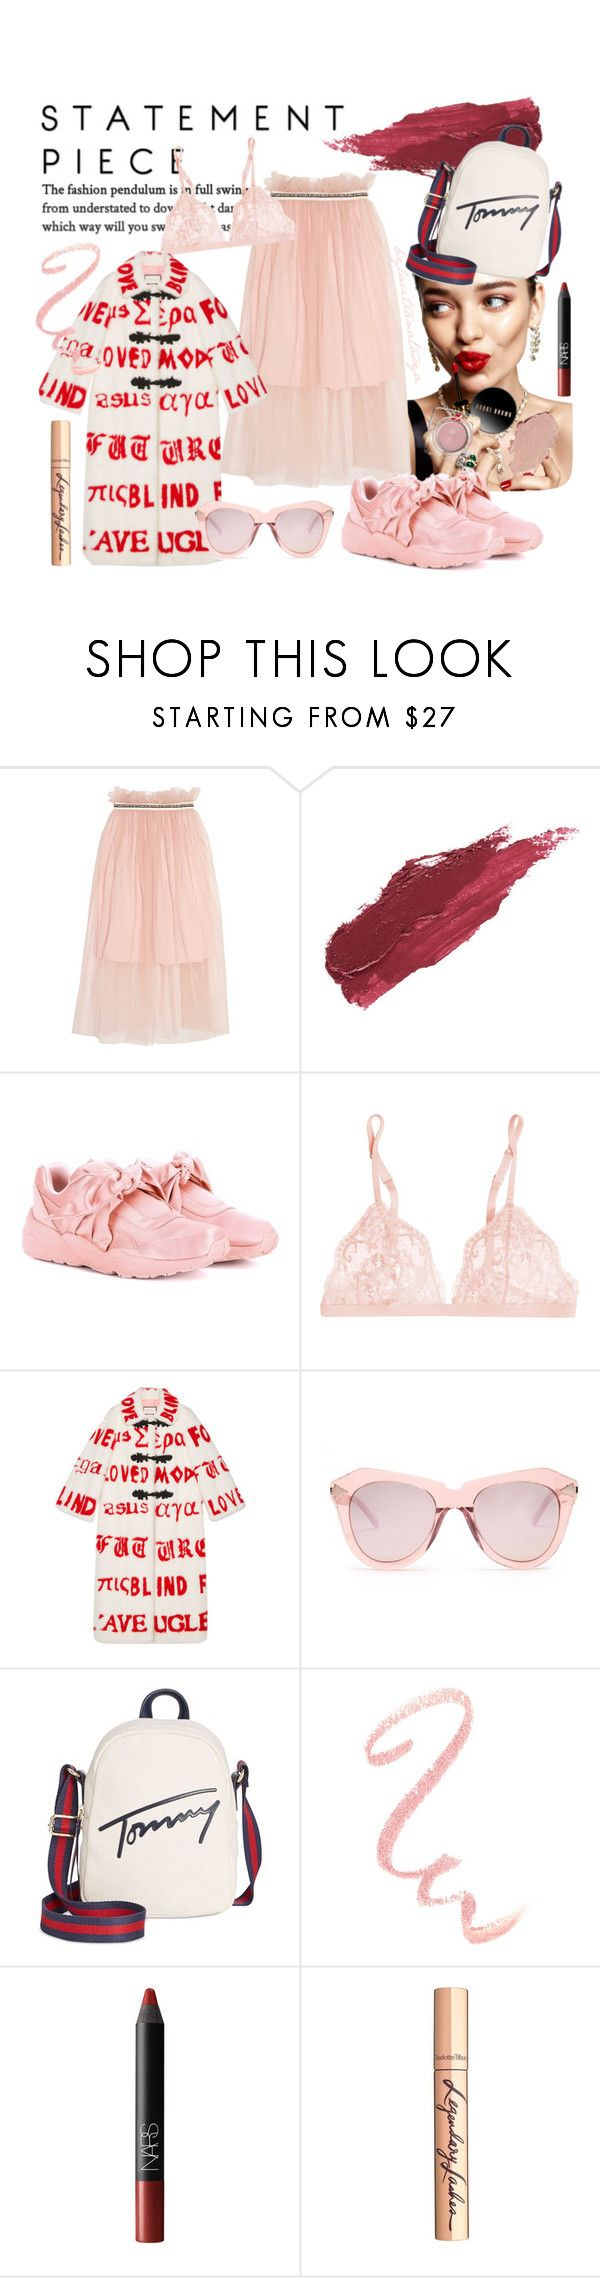 MY SPRING MOOD by bylacitranatasya on Polyvore featuring Gucci, Mother of Pearl, La Perla, Puma, Tommy Hilfiger, Karen Walker, Lily Lolo, Charlotte Tilbury, NARS Cosmetics and KAROLINA